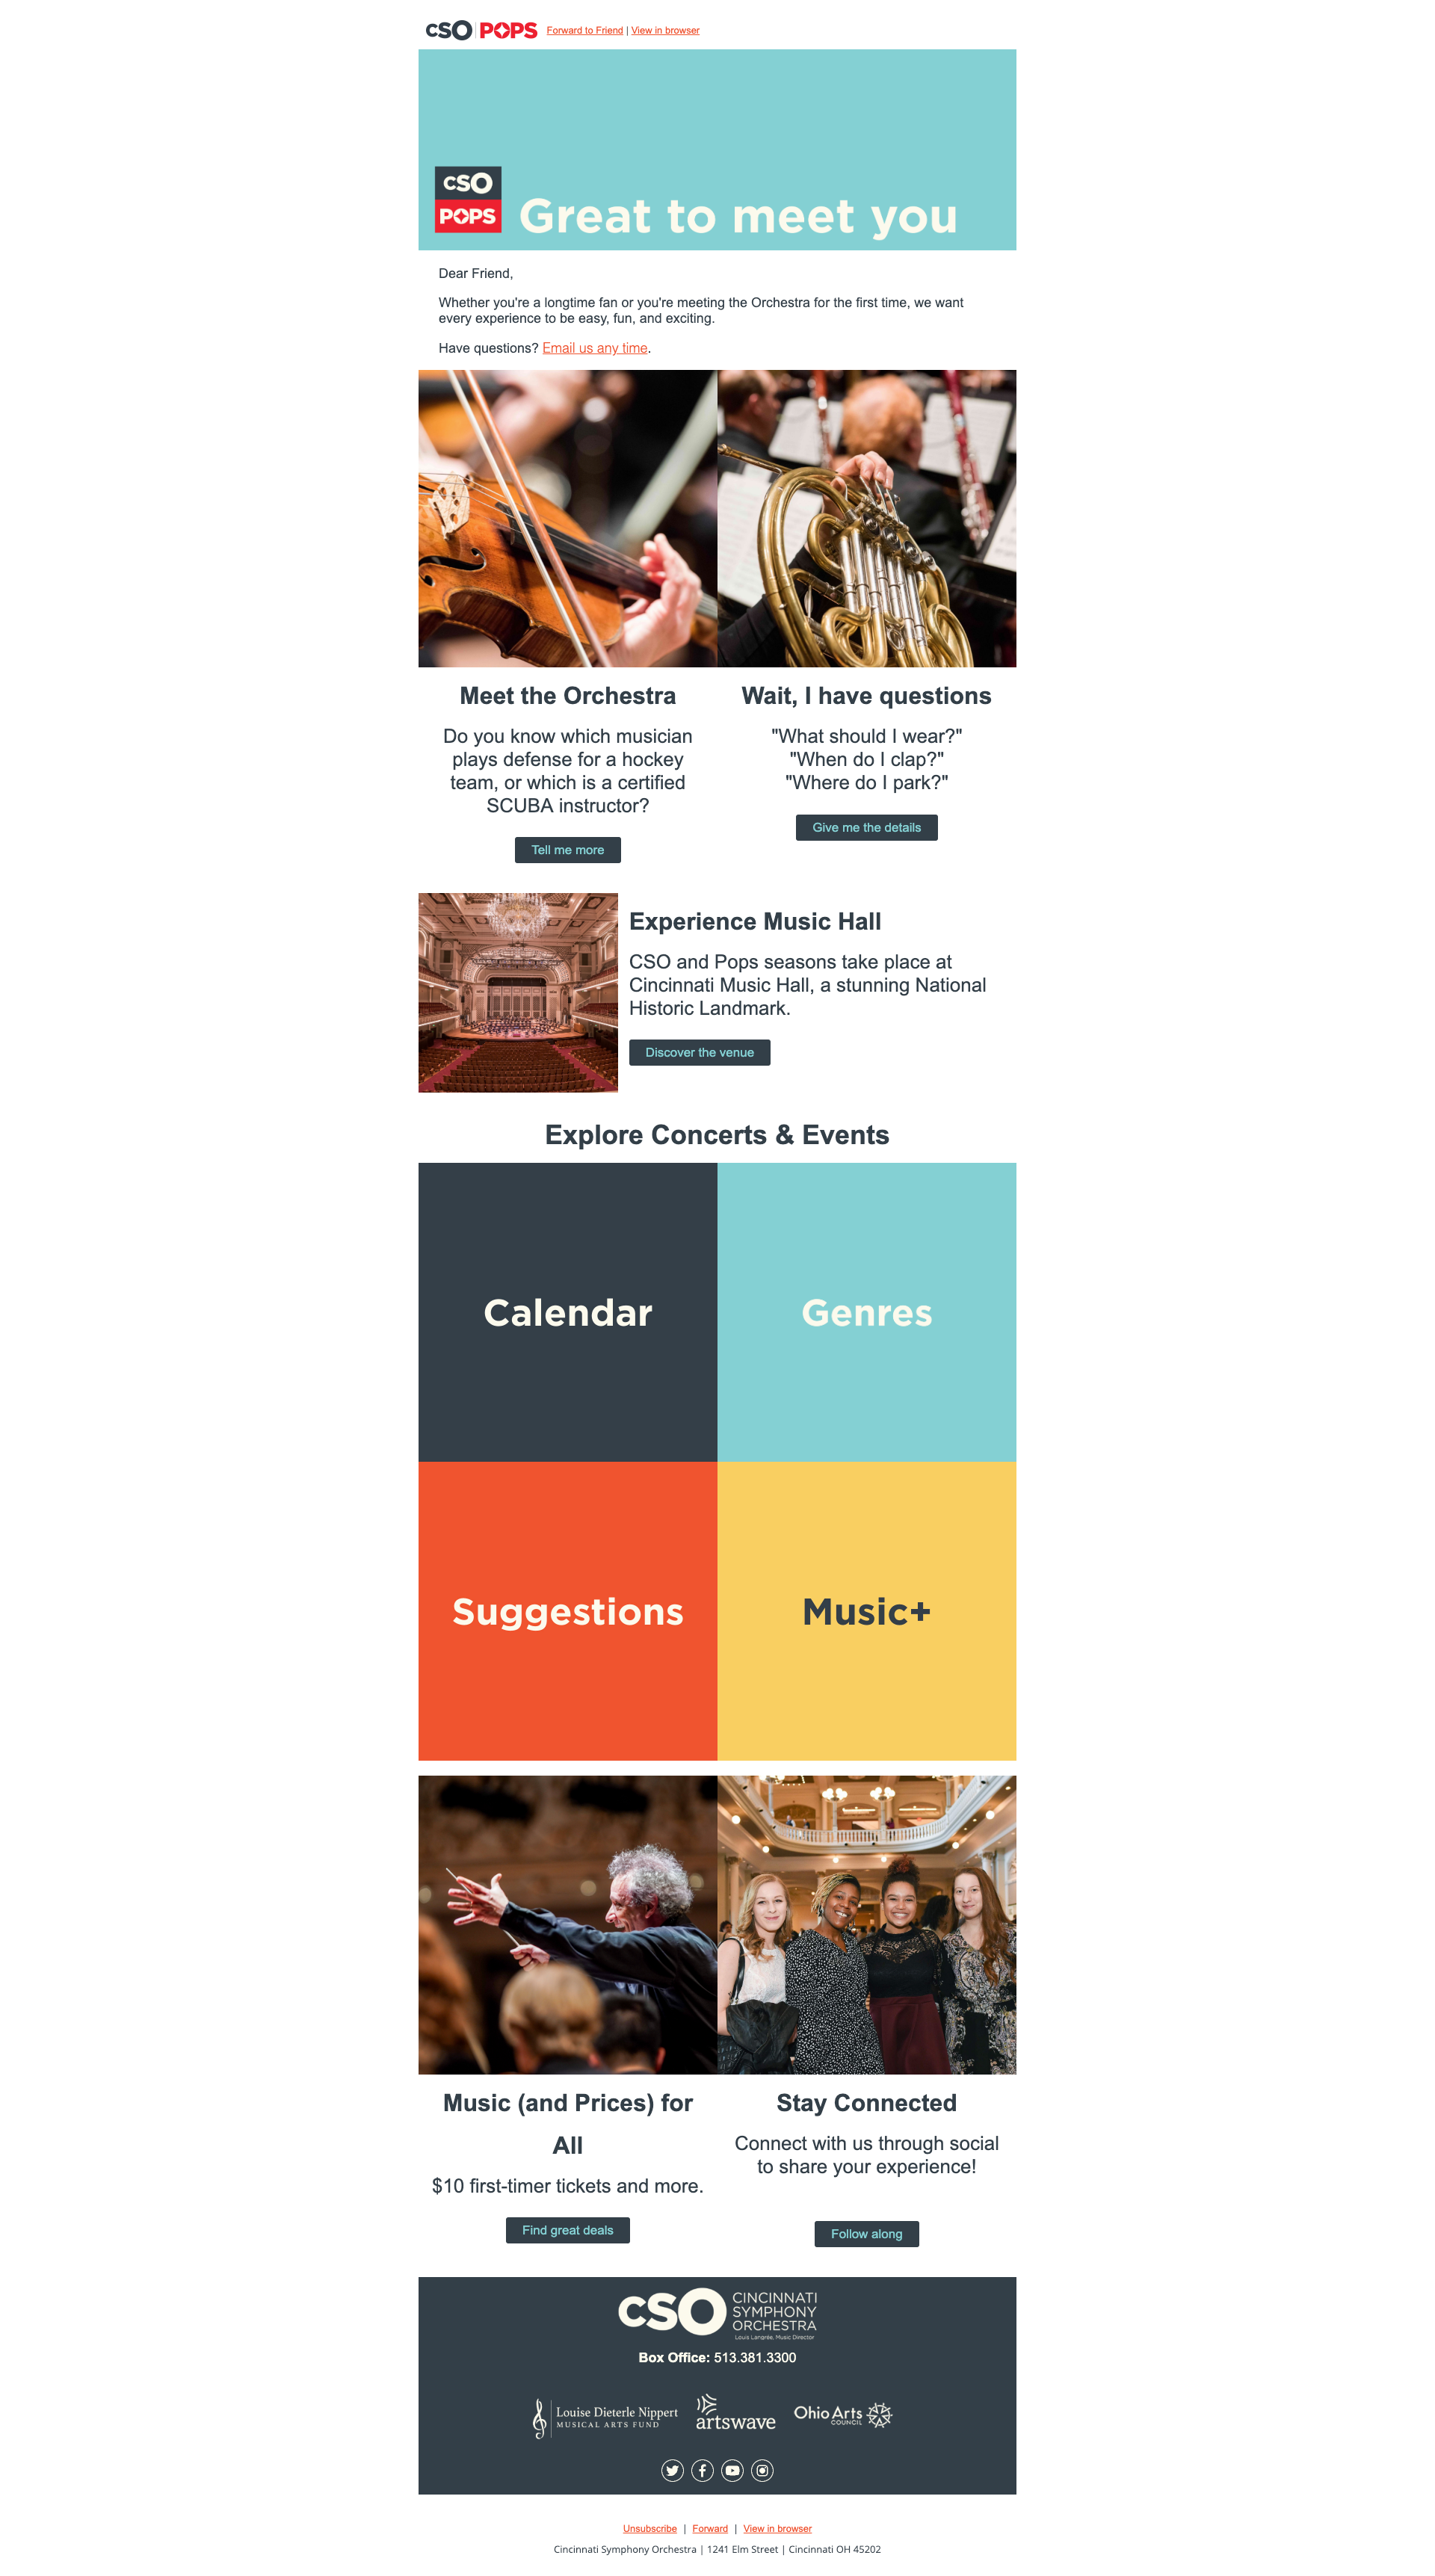 Screenshot of an email from Cincinnati Symphony Orchestra showing the first email in their welcome cascade